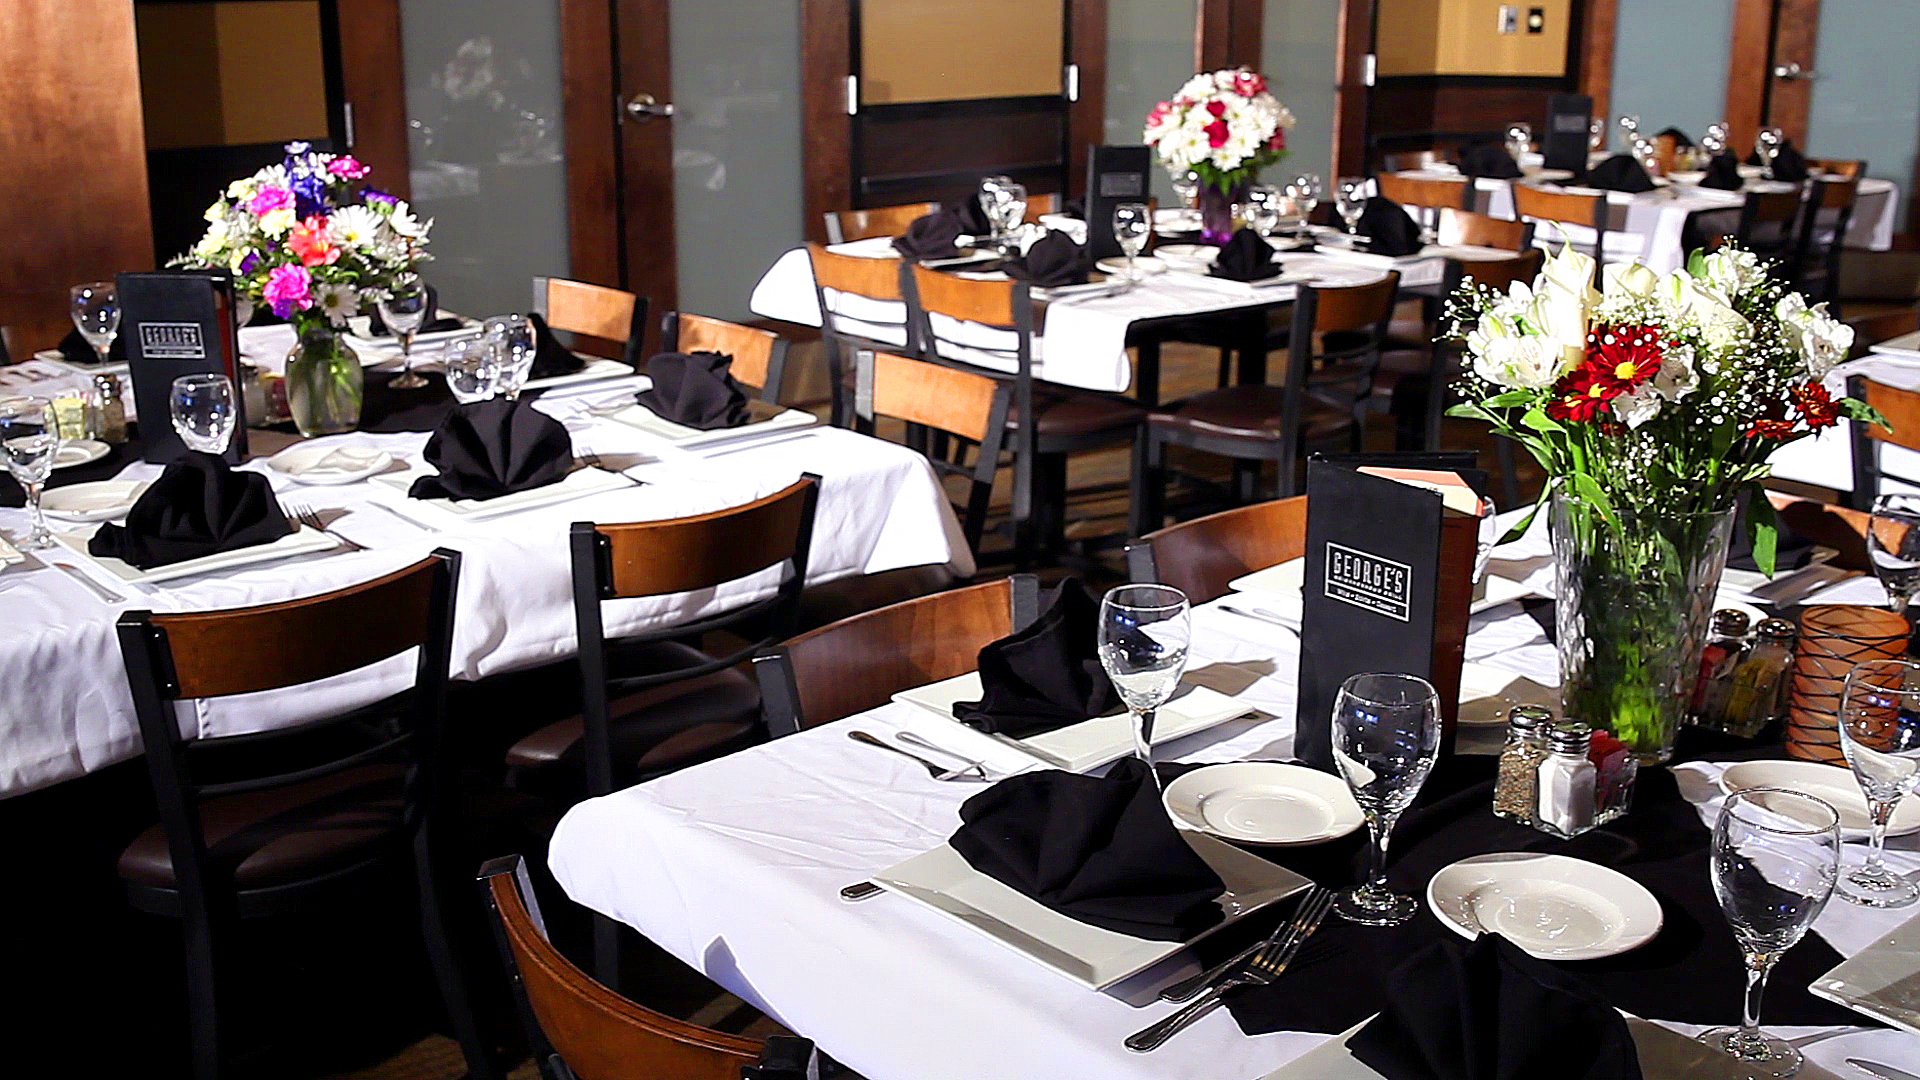 the banquet room with tables set